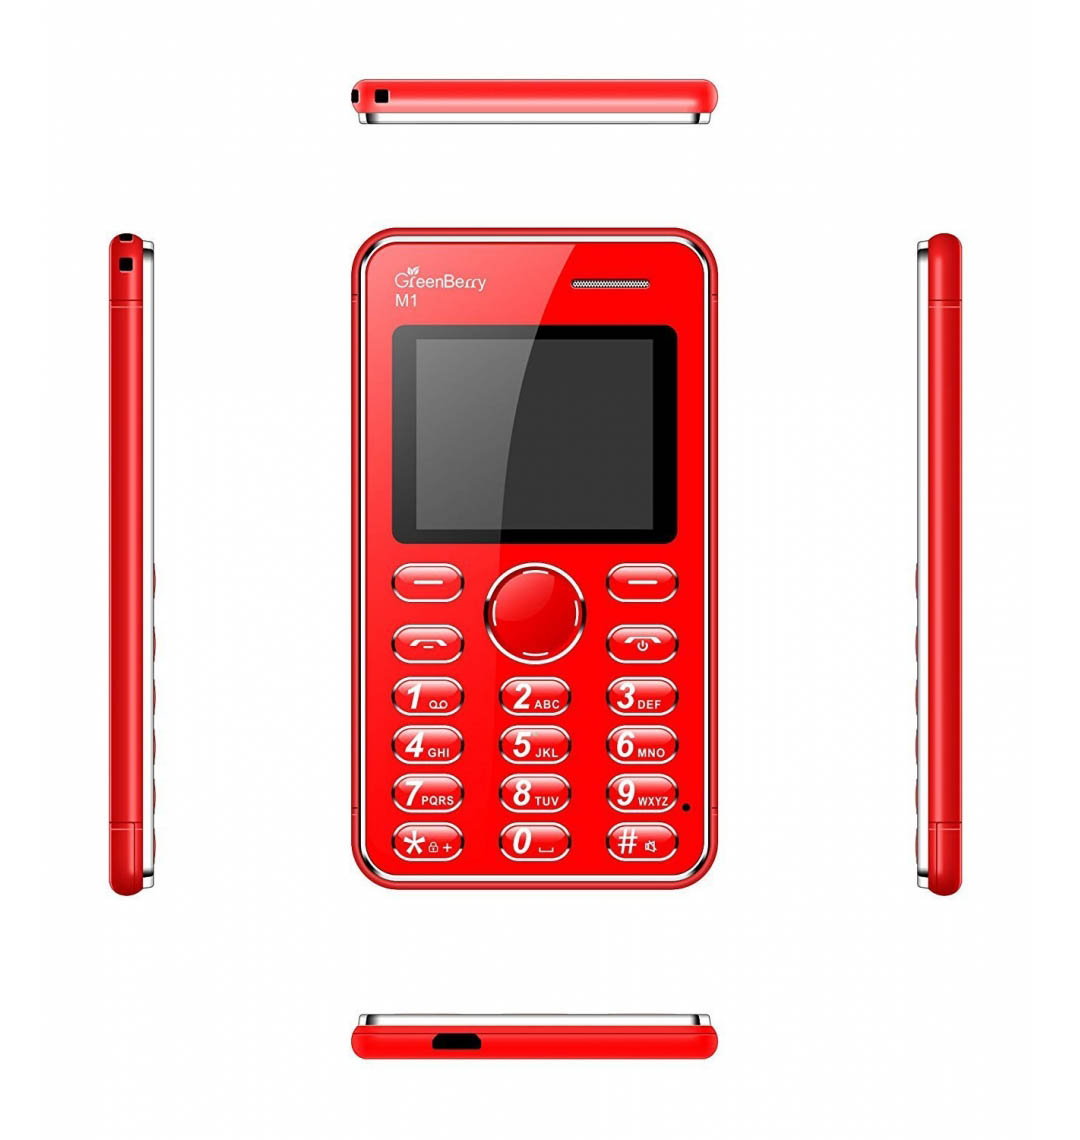 GreenBerry's M1 Card Phone | Bluetooth Dialer | Size: Credit Card | Single SIM (GSM) | Colour: Red Golden